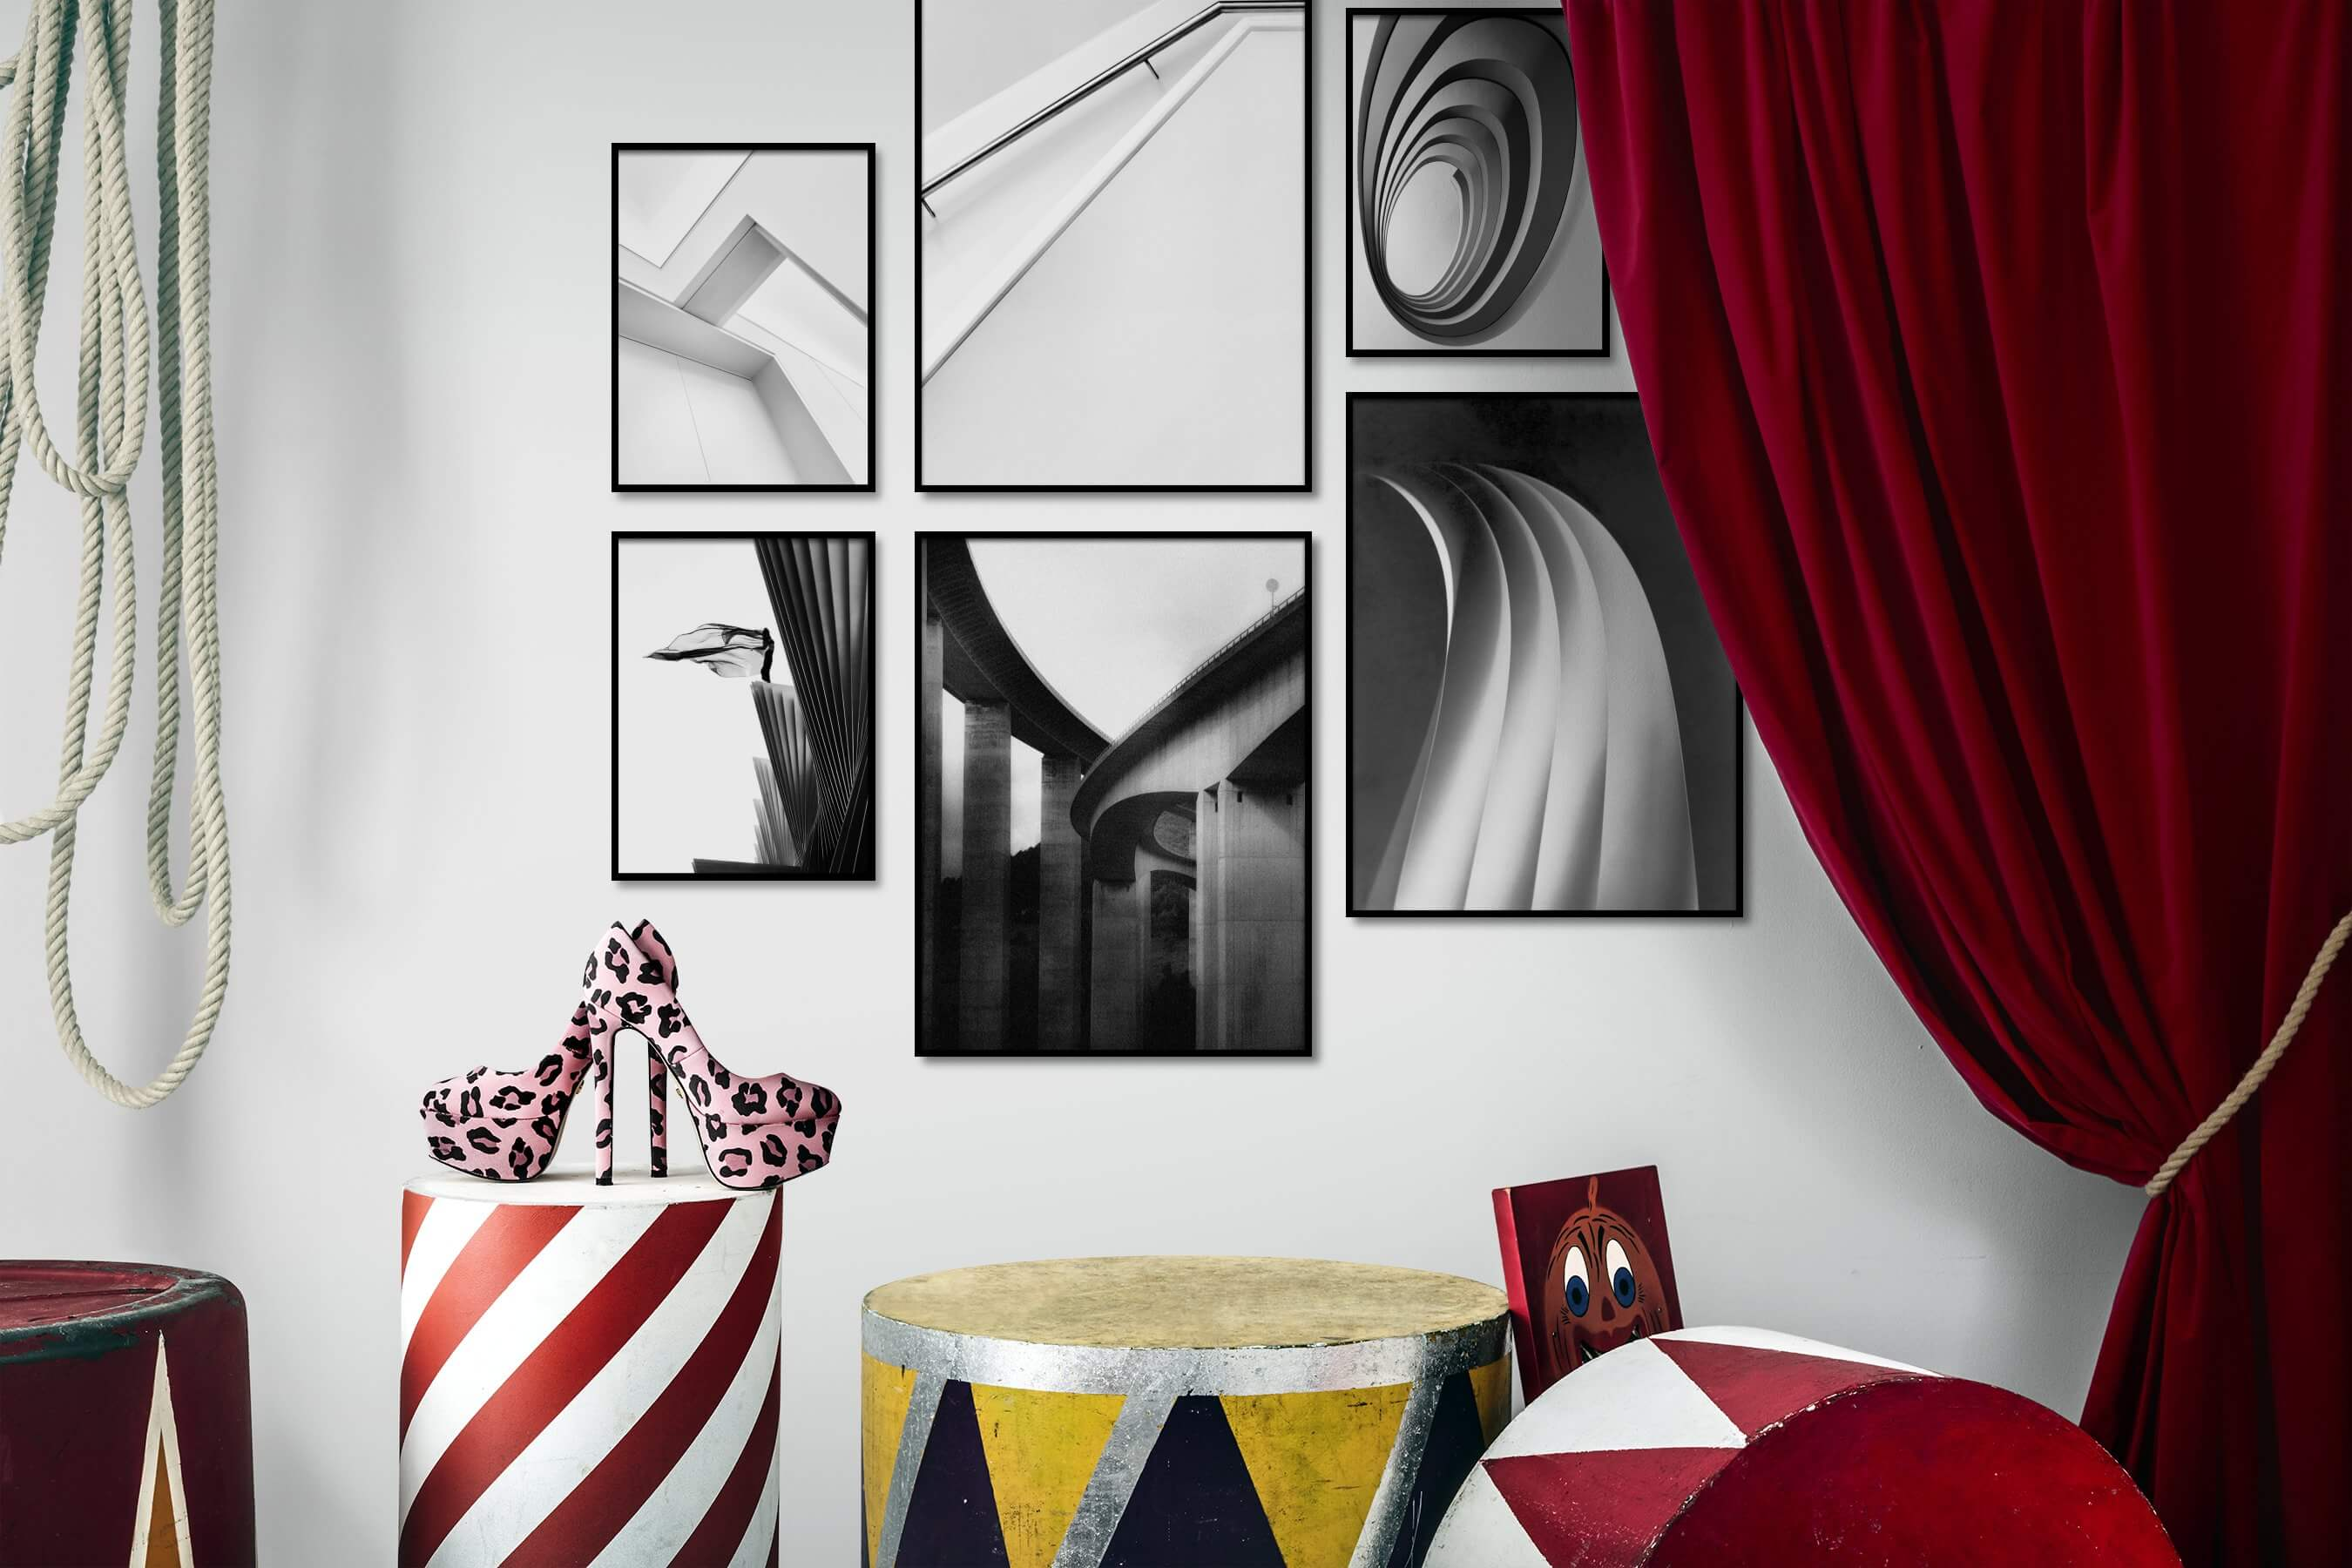 Gallery wall idea with six framed pictures arranged on a wall depicting Black & White, Bright Tones, For the Moderate, and For the Minimalist